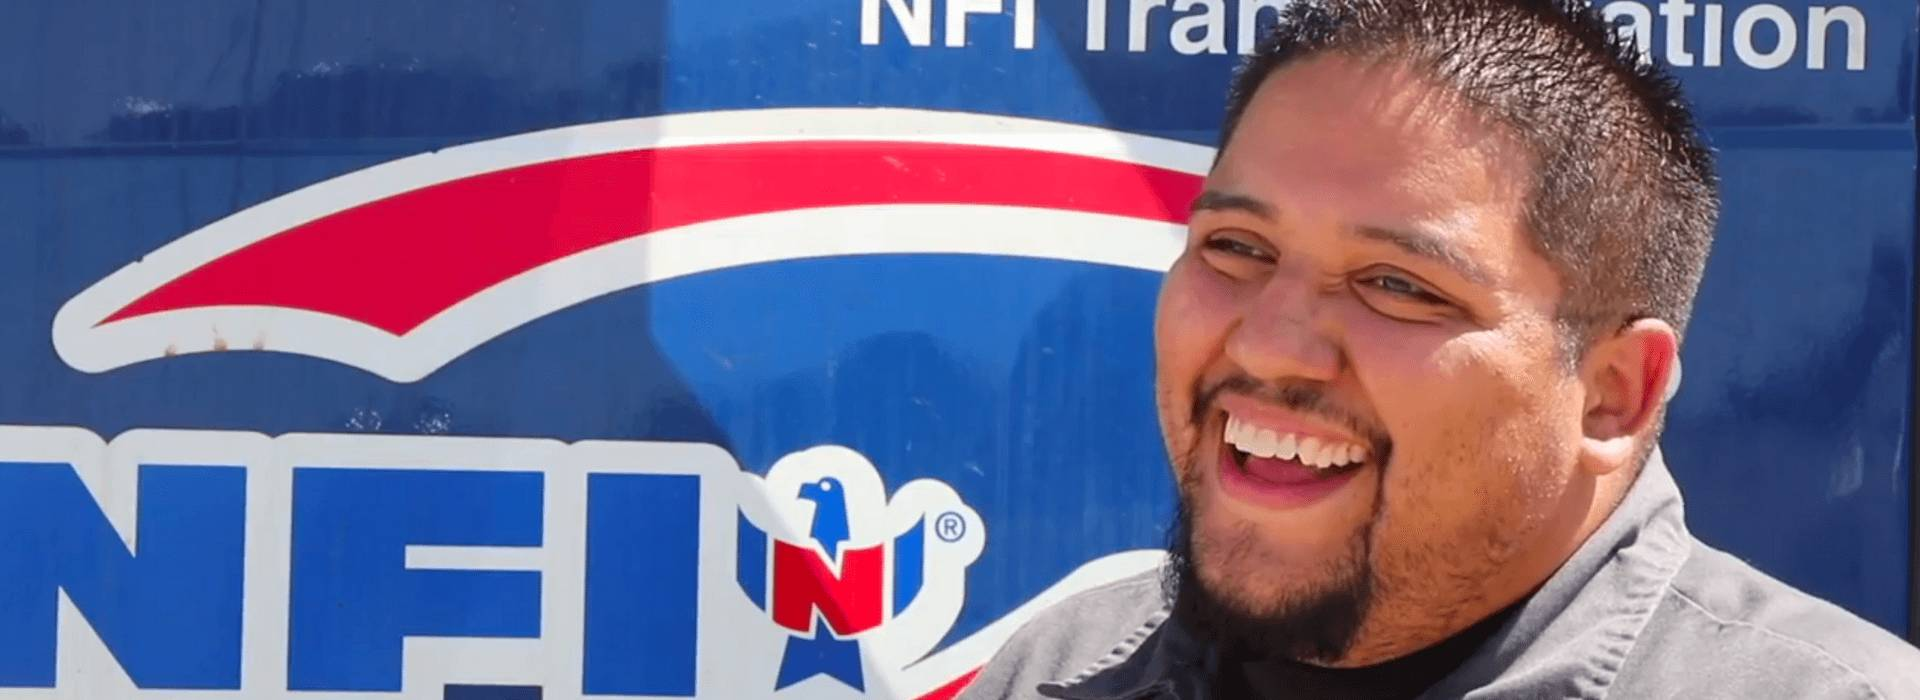 nfi-drivers-career-home-Video-Previews